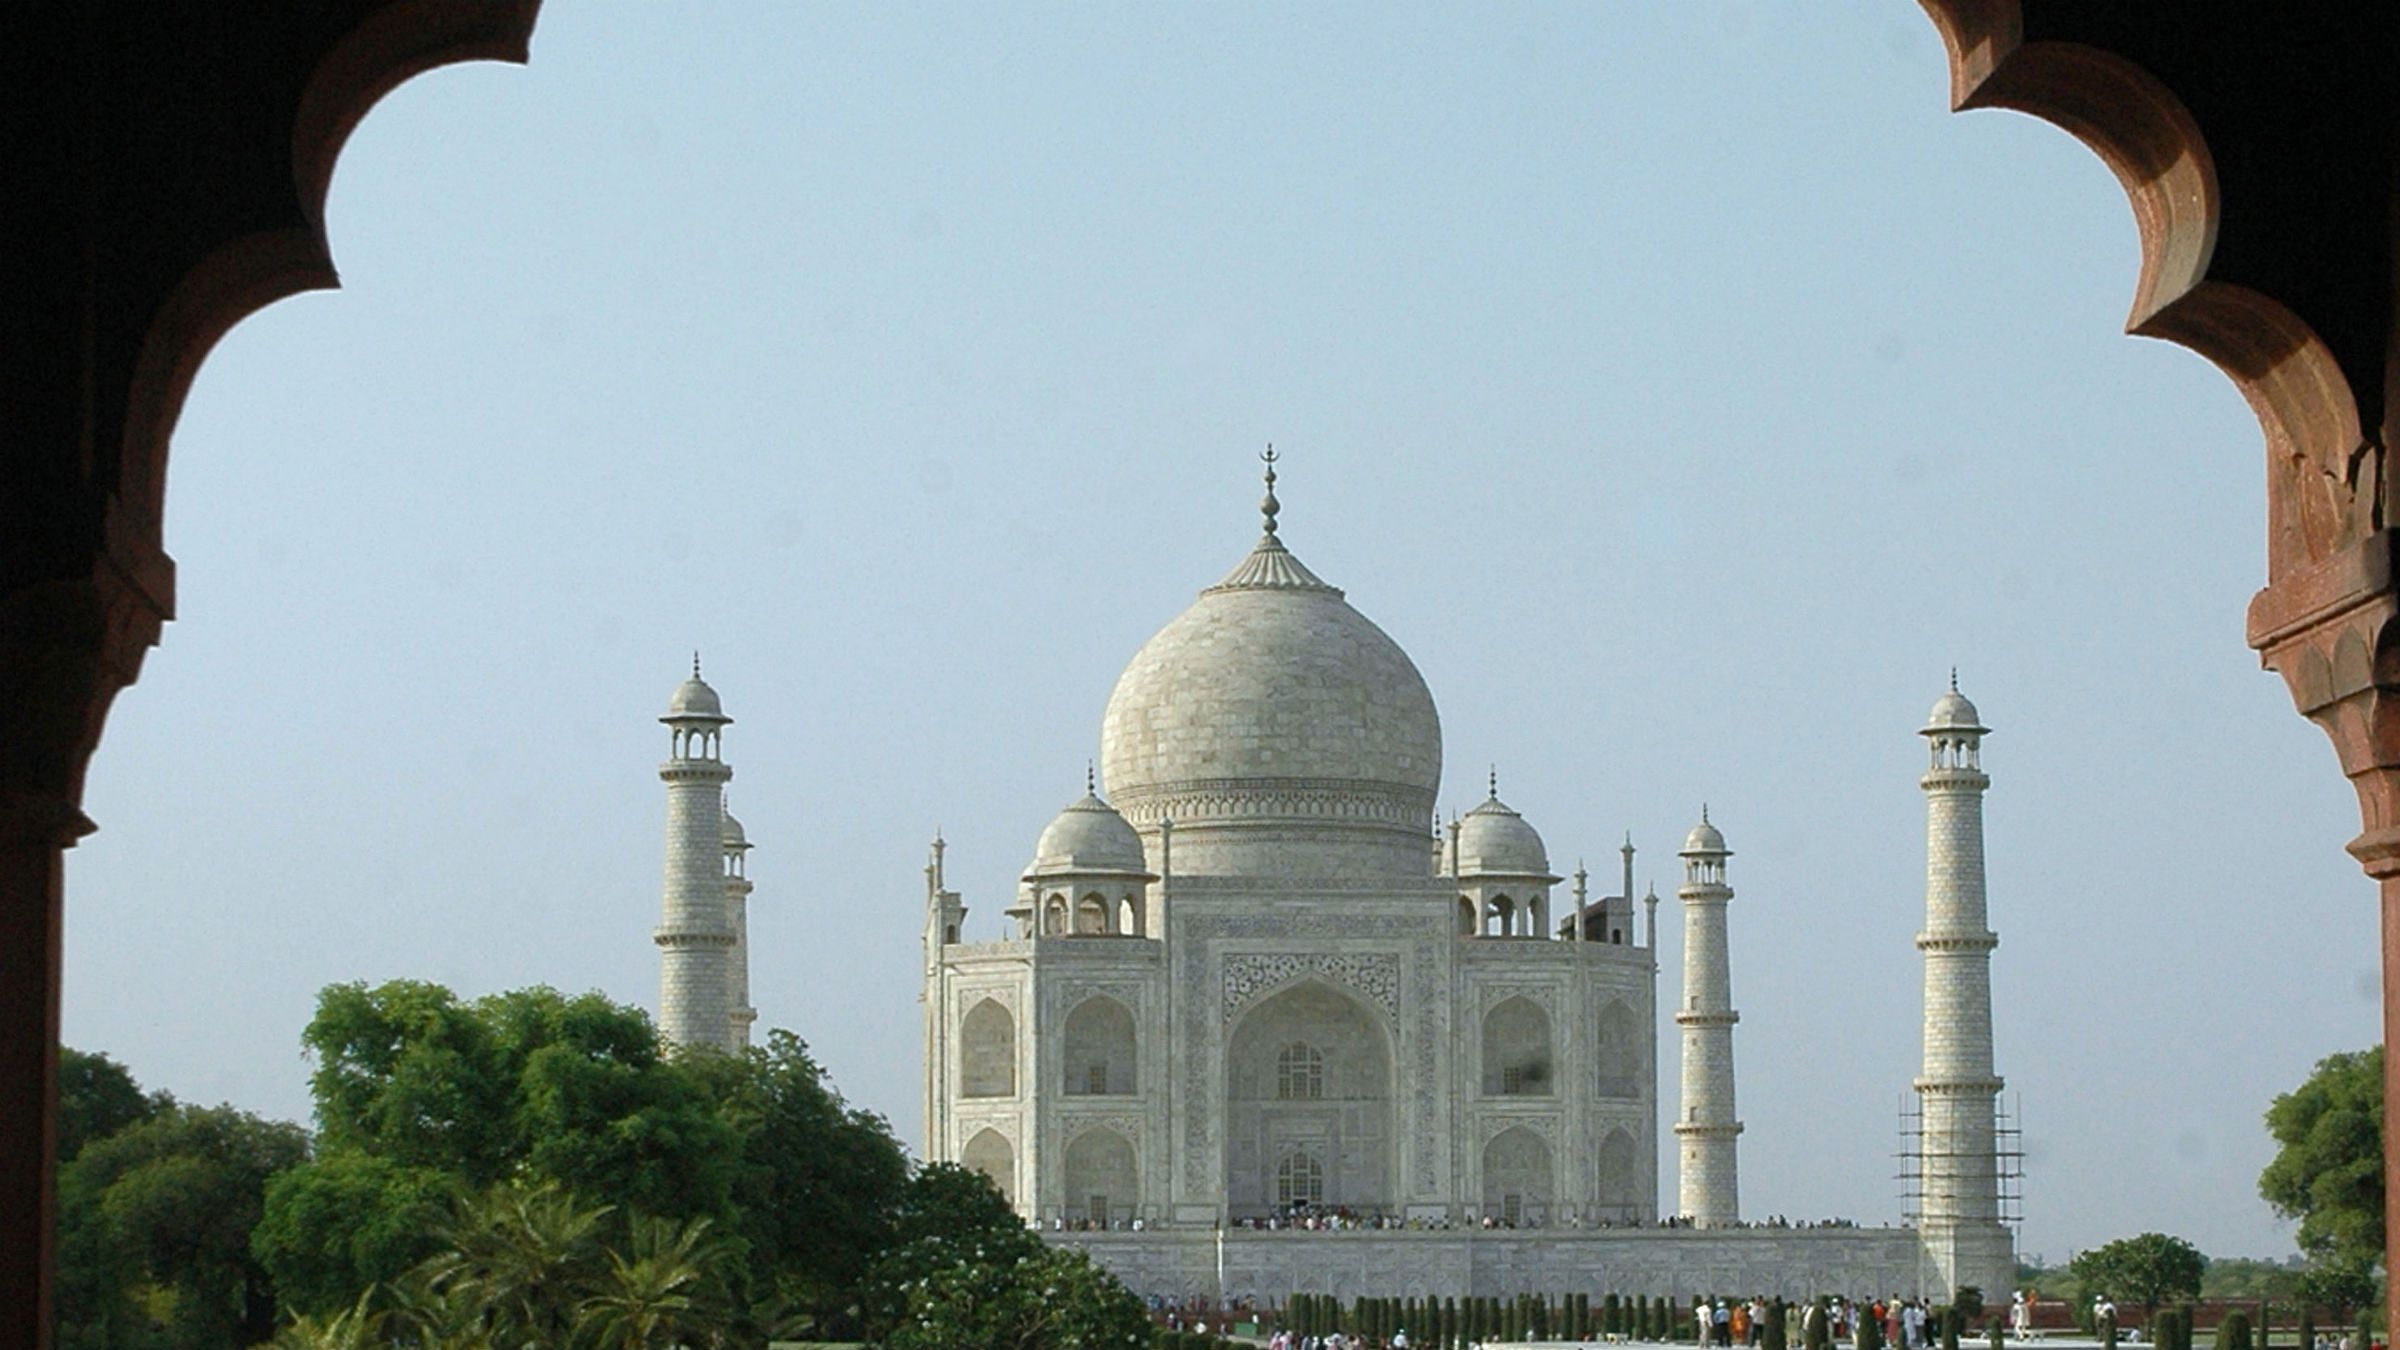 All it needs is a sari-clad woman.